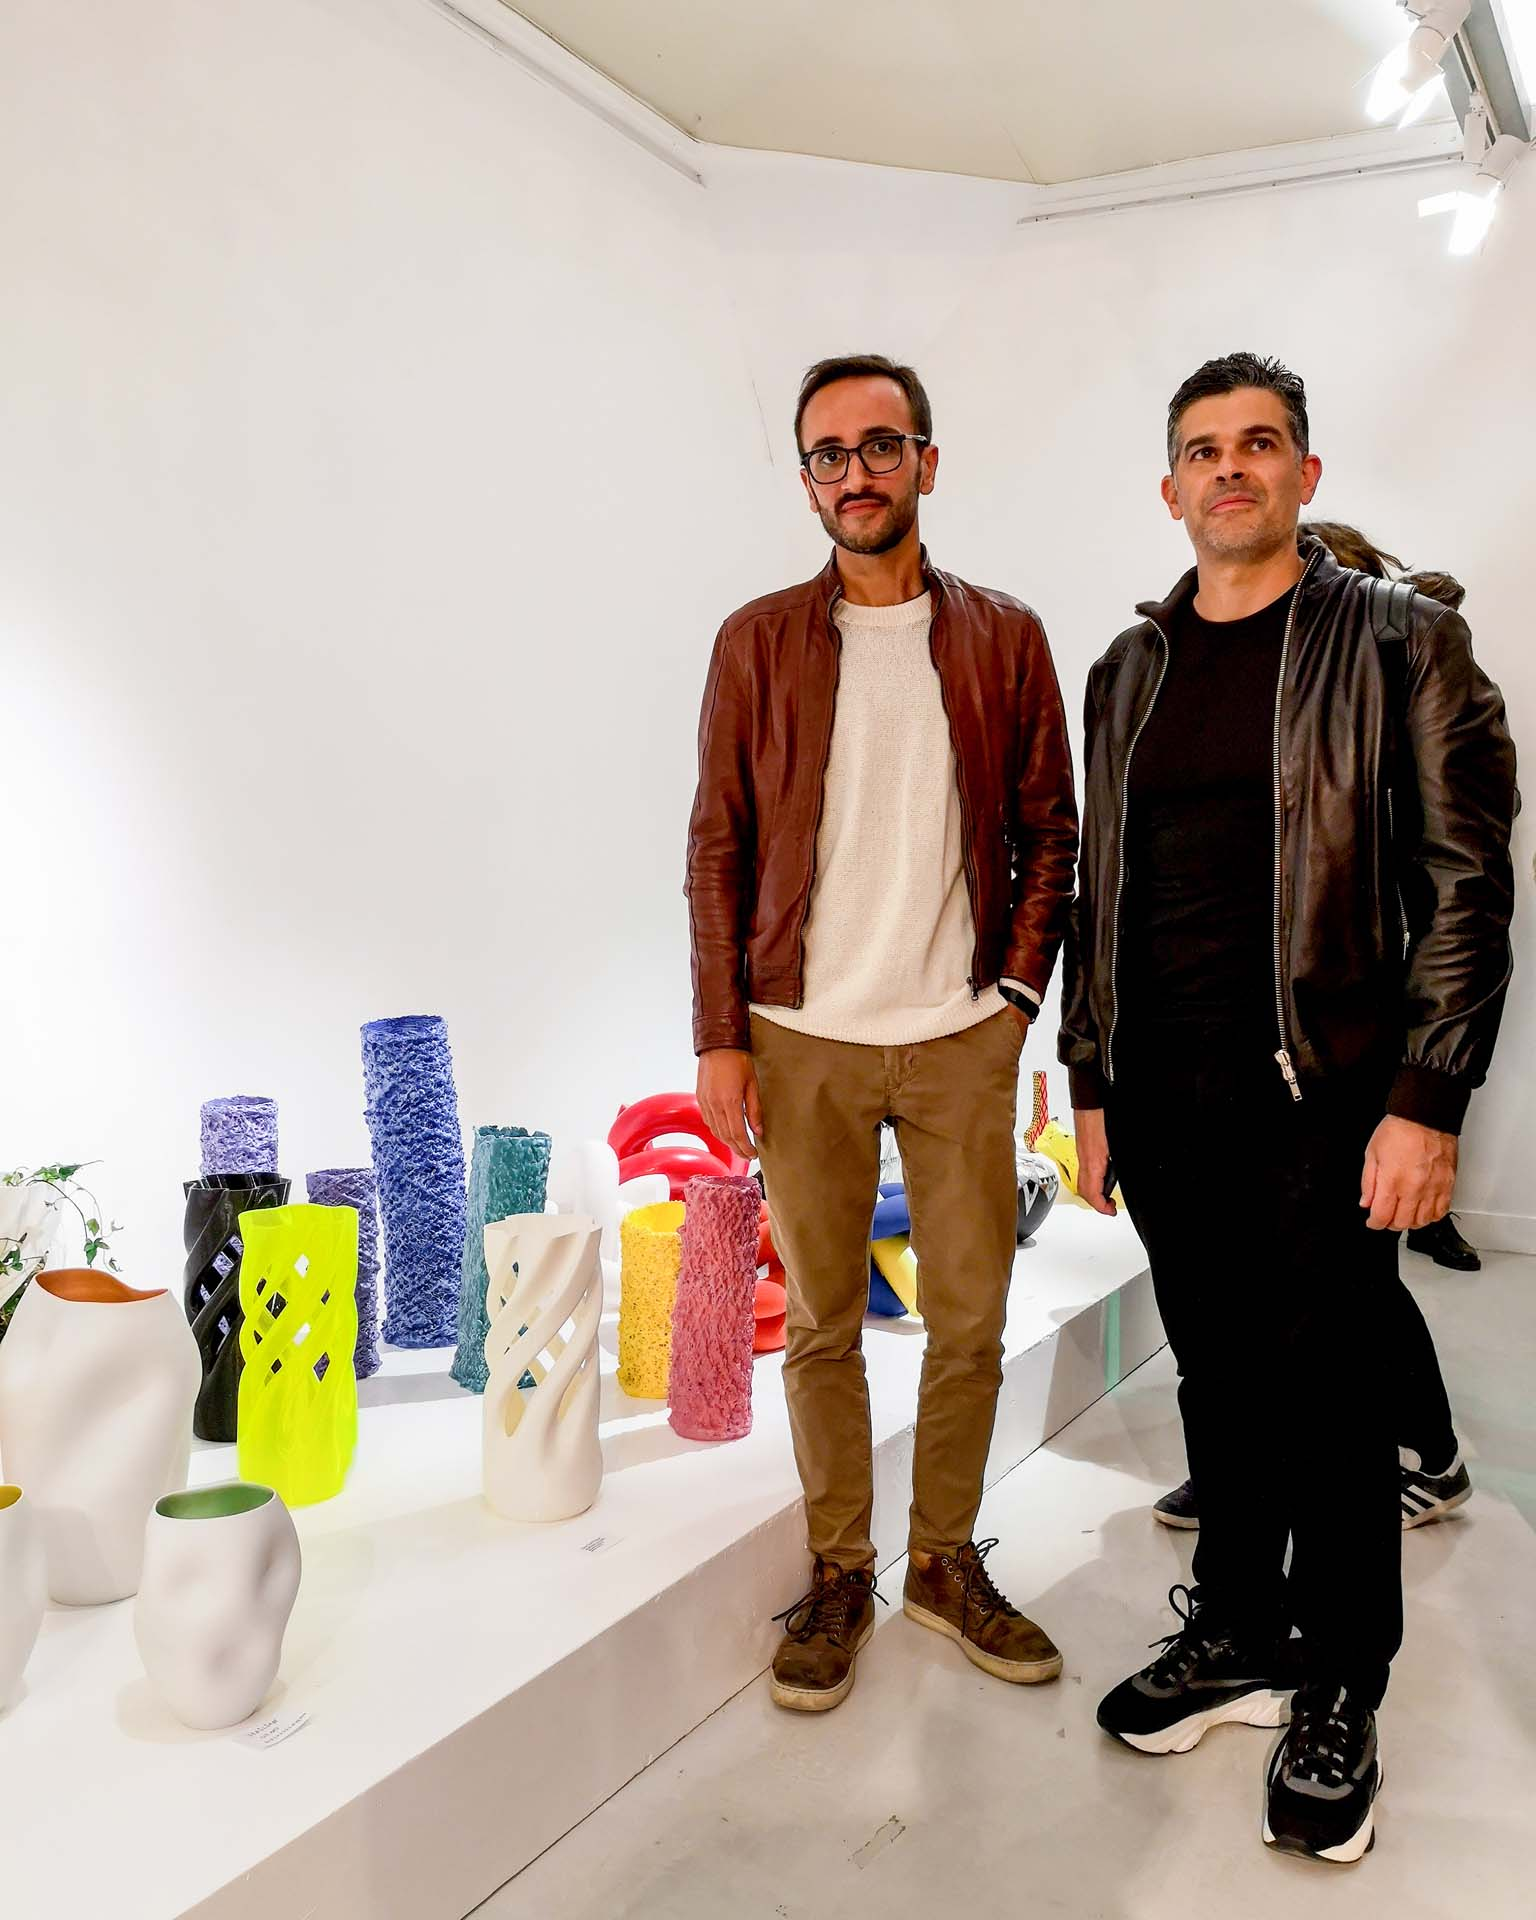 Adriano Alfaro & David Bitton @ 1000 VASES, Paris Design Week 2019